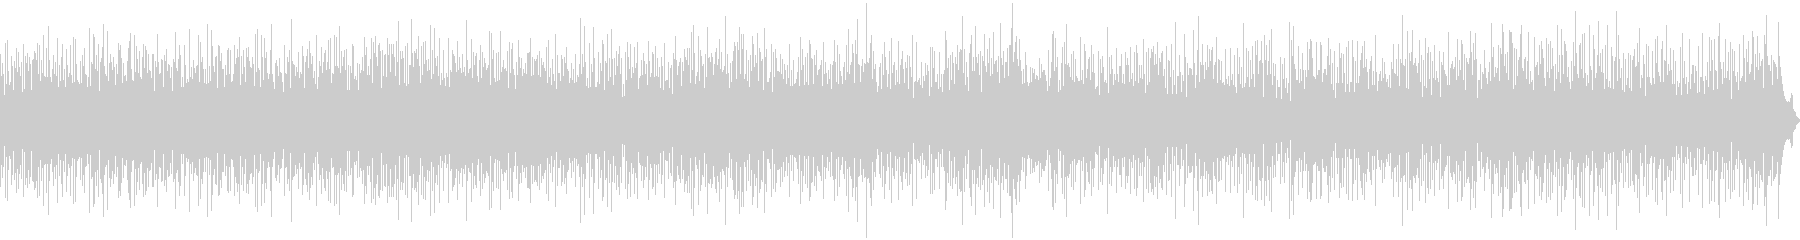 A country band on a harvest festival day's unreproduced waveform